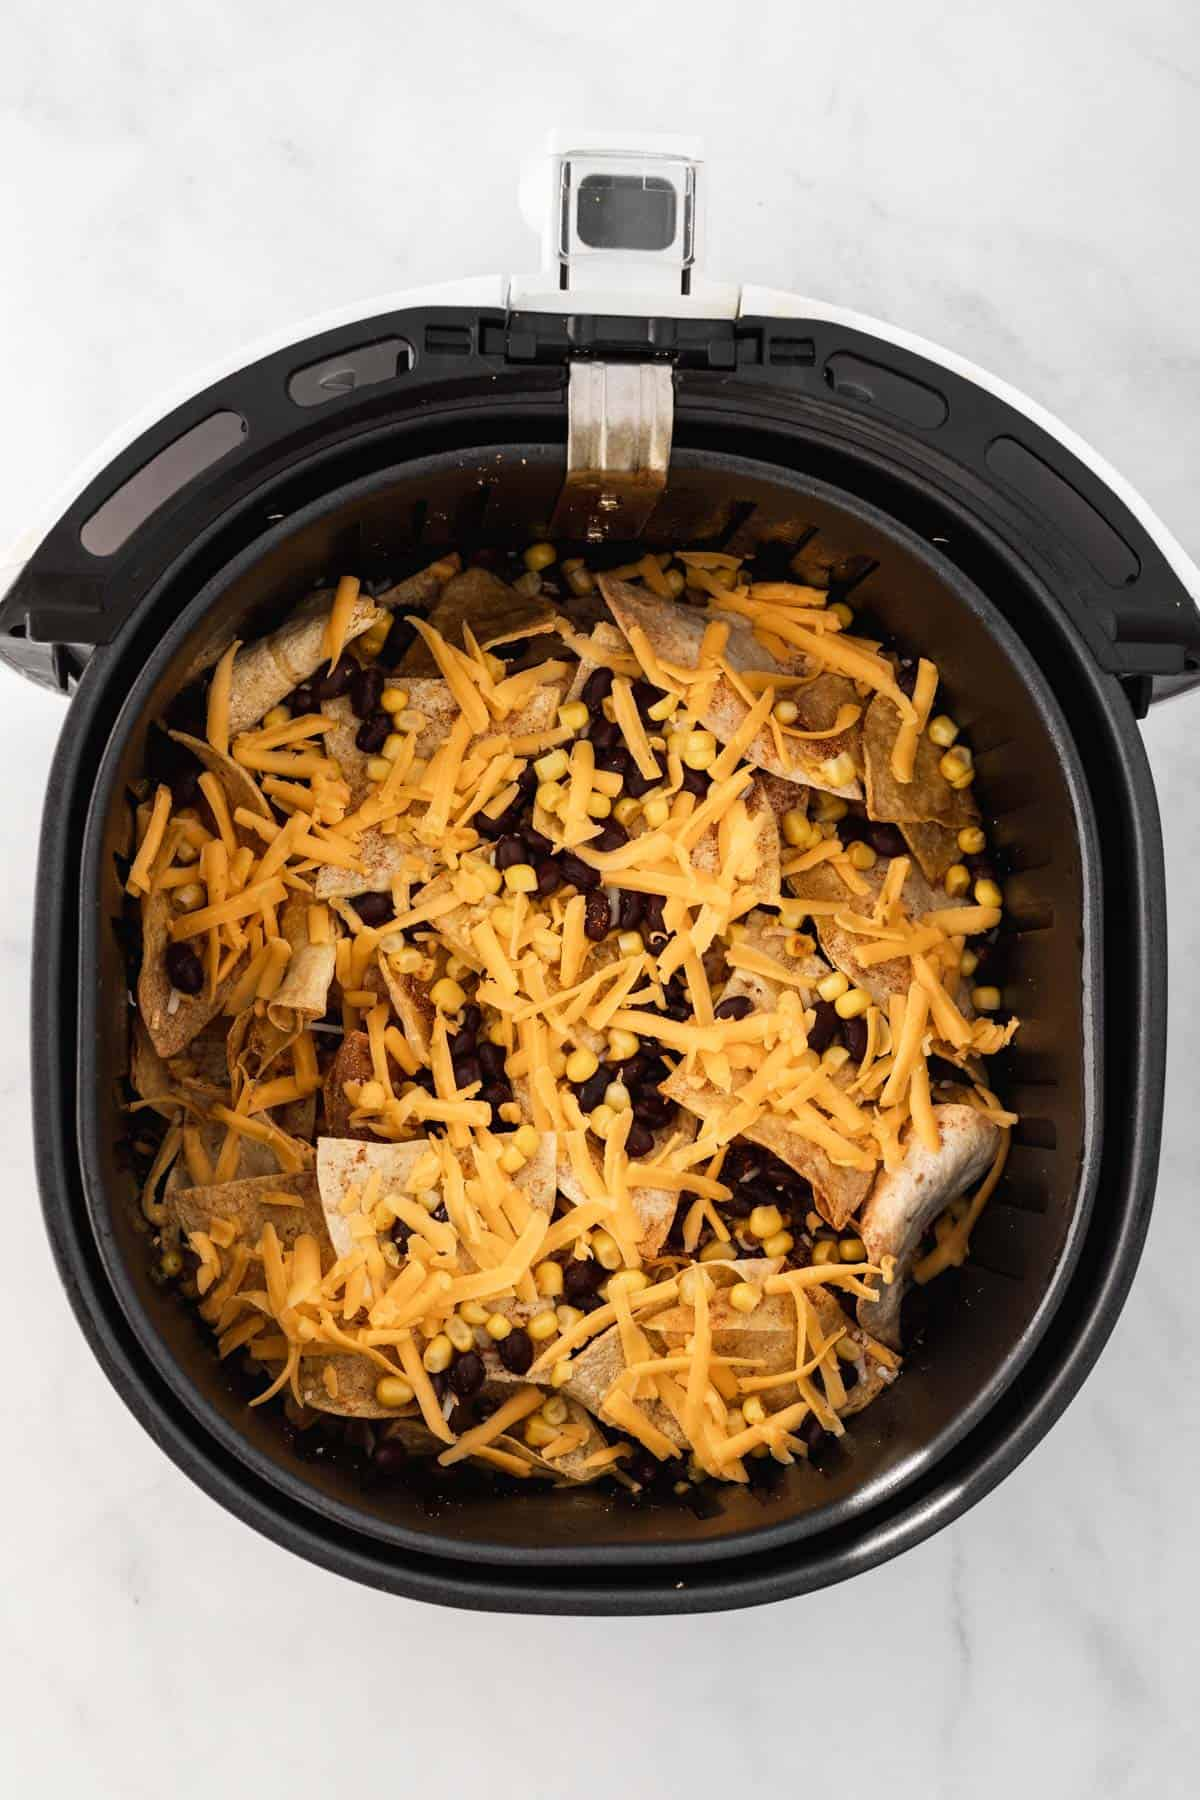 Tortilla chips, black beans, corn, and cheese layered in an air fryer basket.